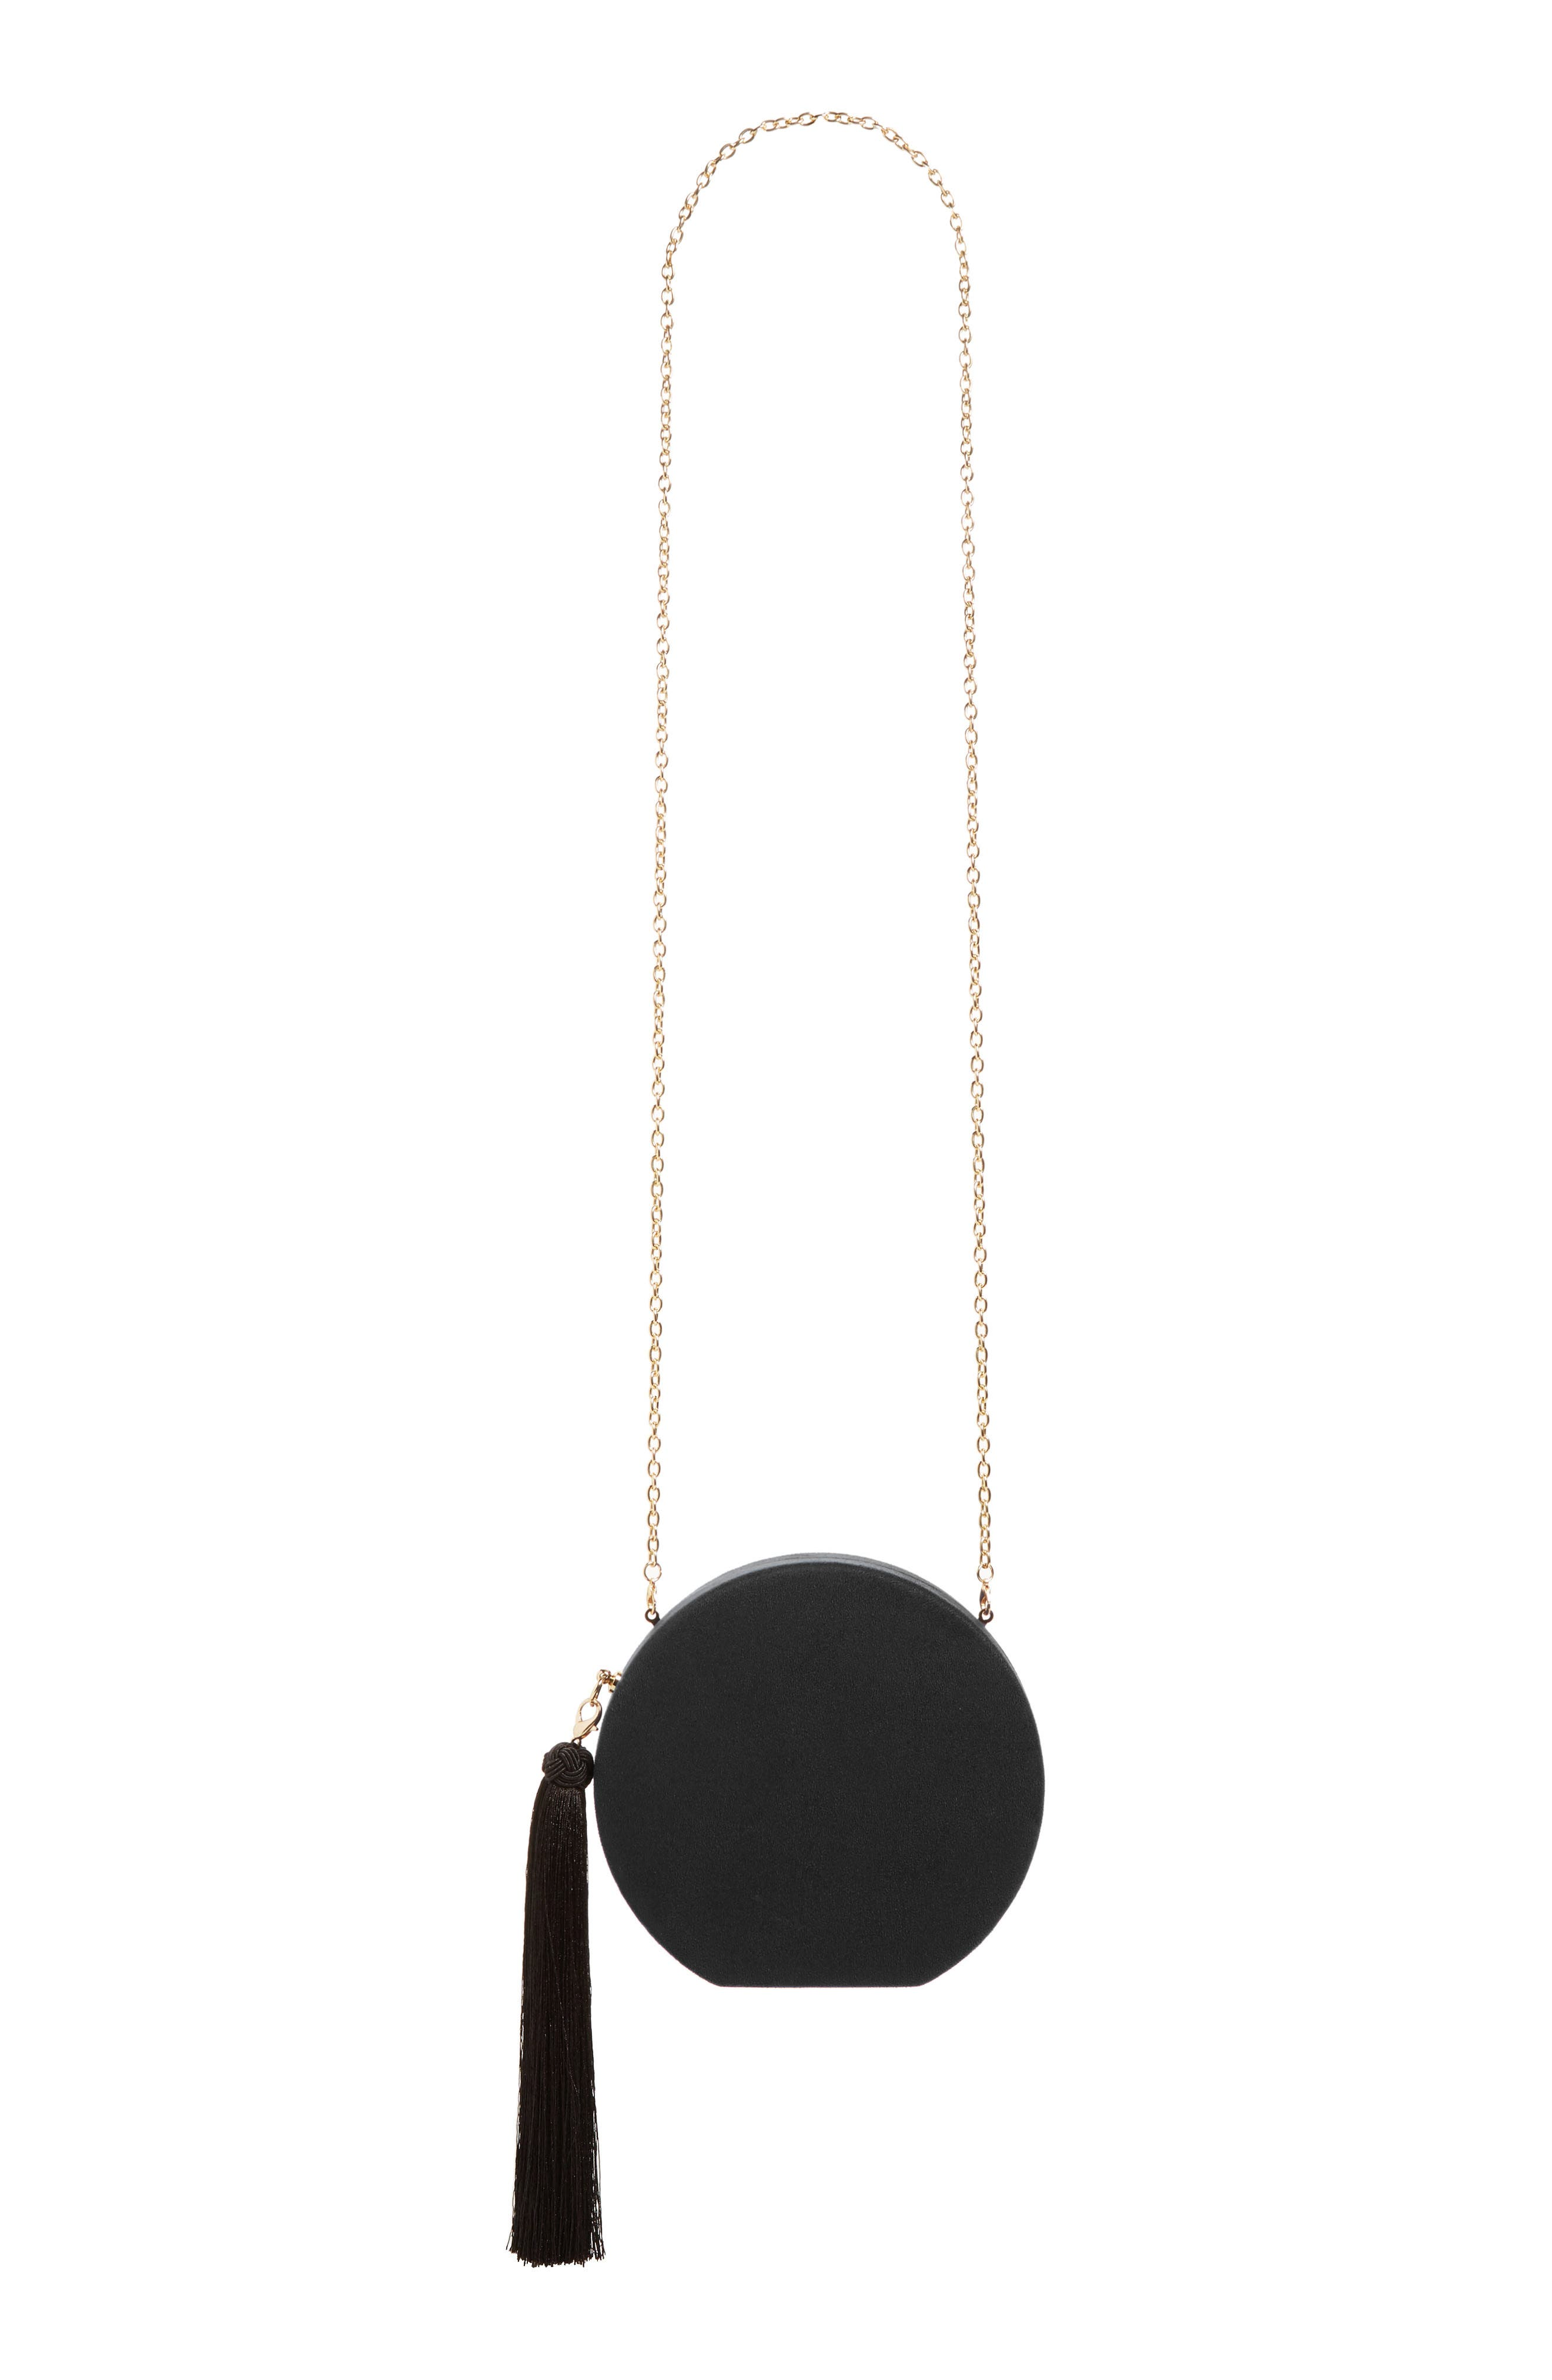 Couture Round Tassel Clutch,                         Main,                         color, 001